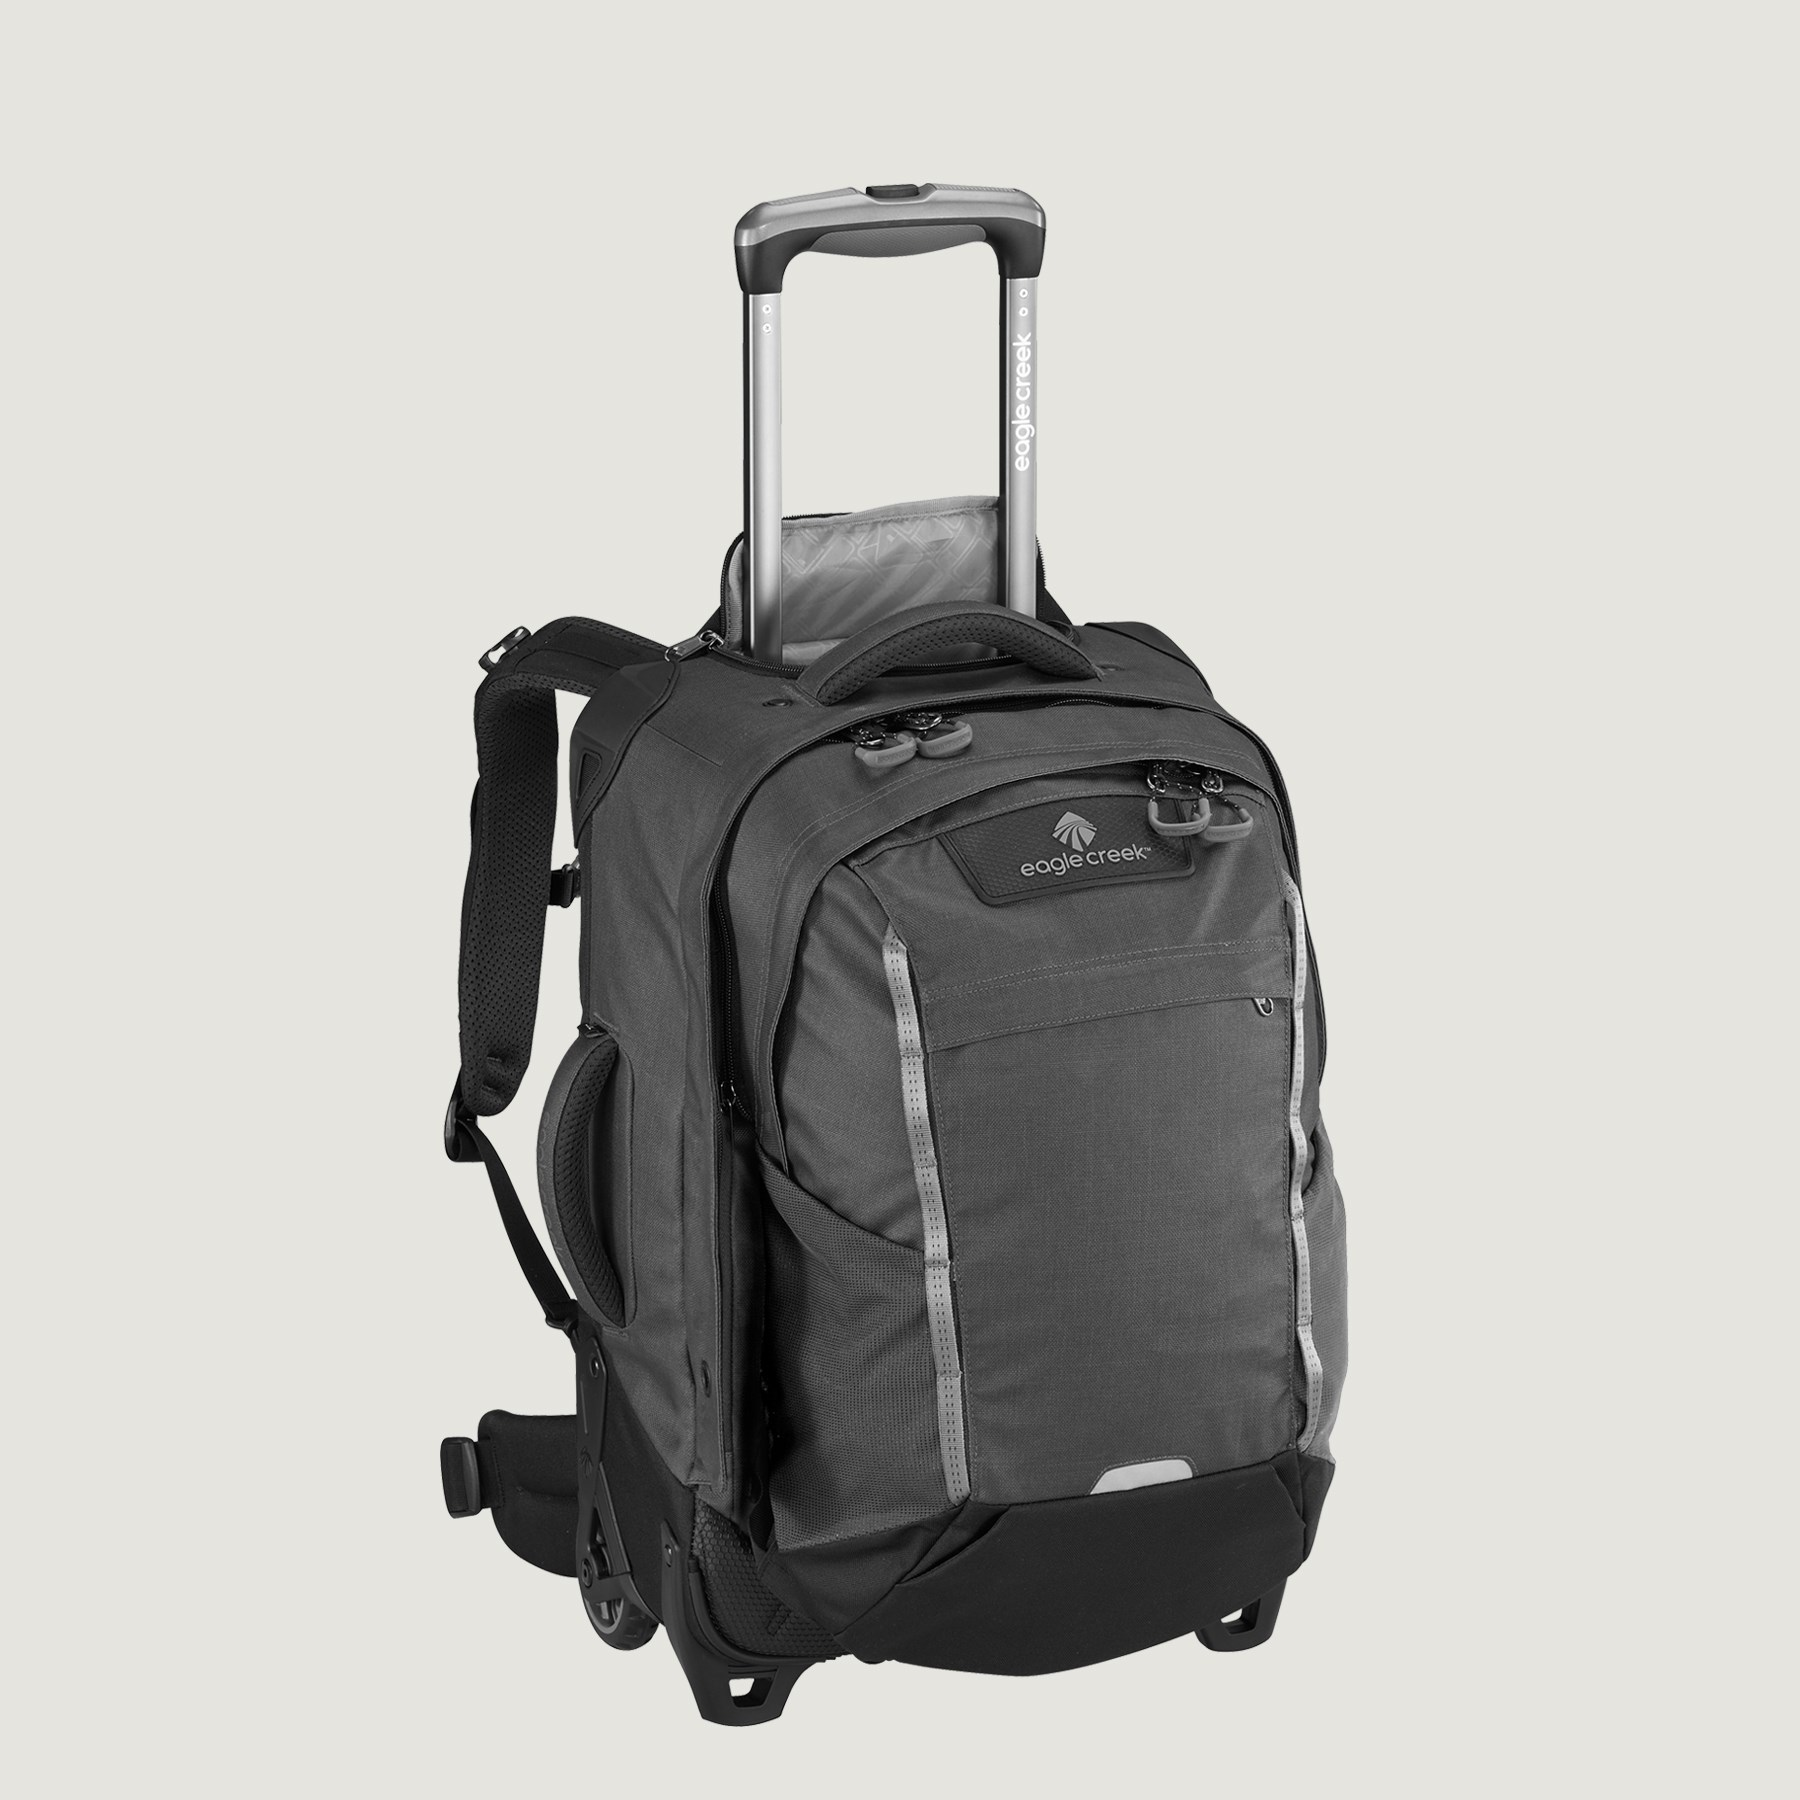 Eagle Creek Expanse Convertible Luggage and Gear Kit 1.jpg